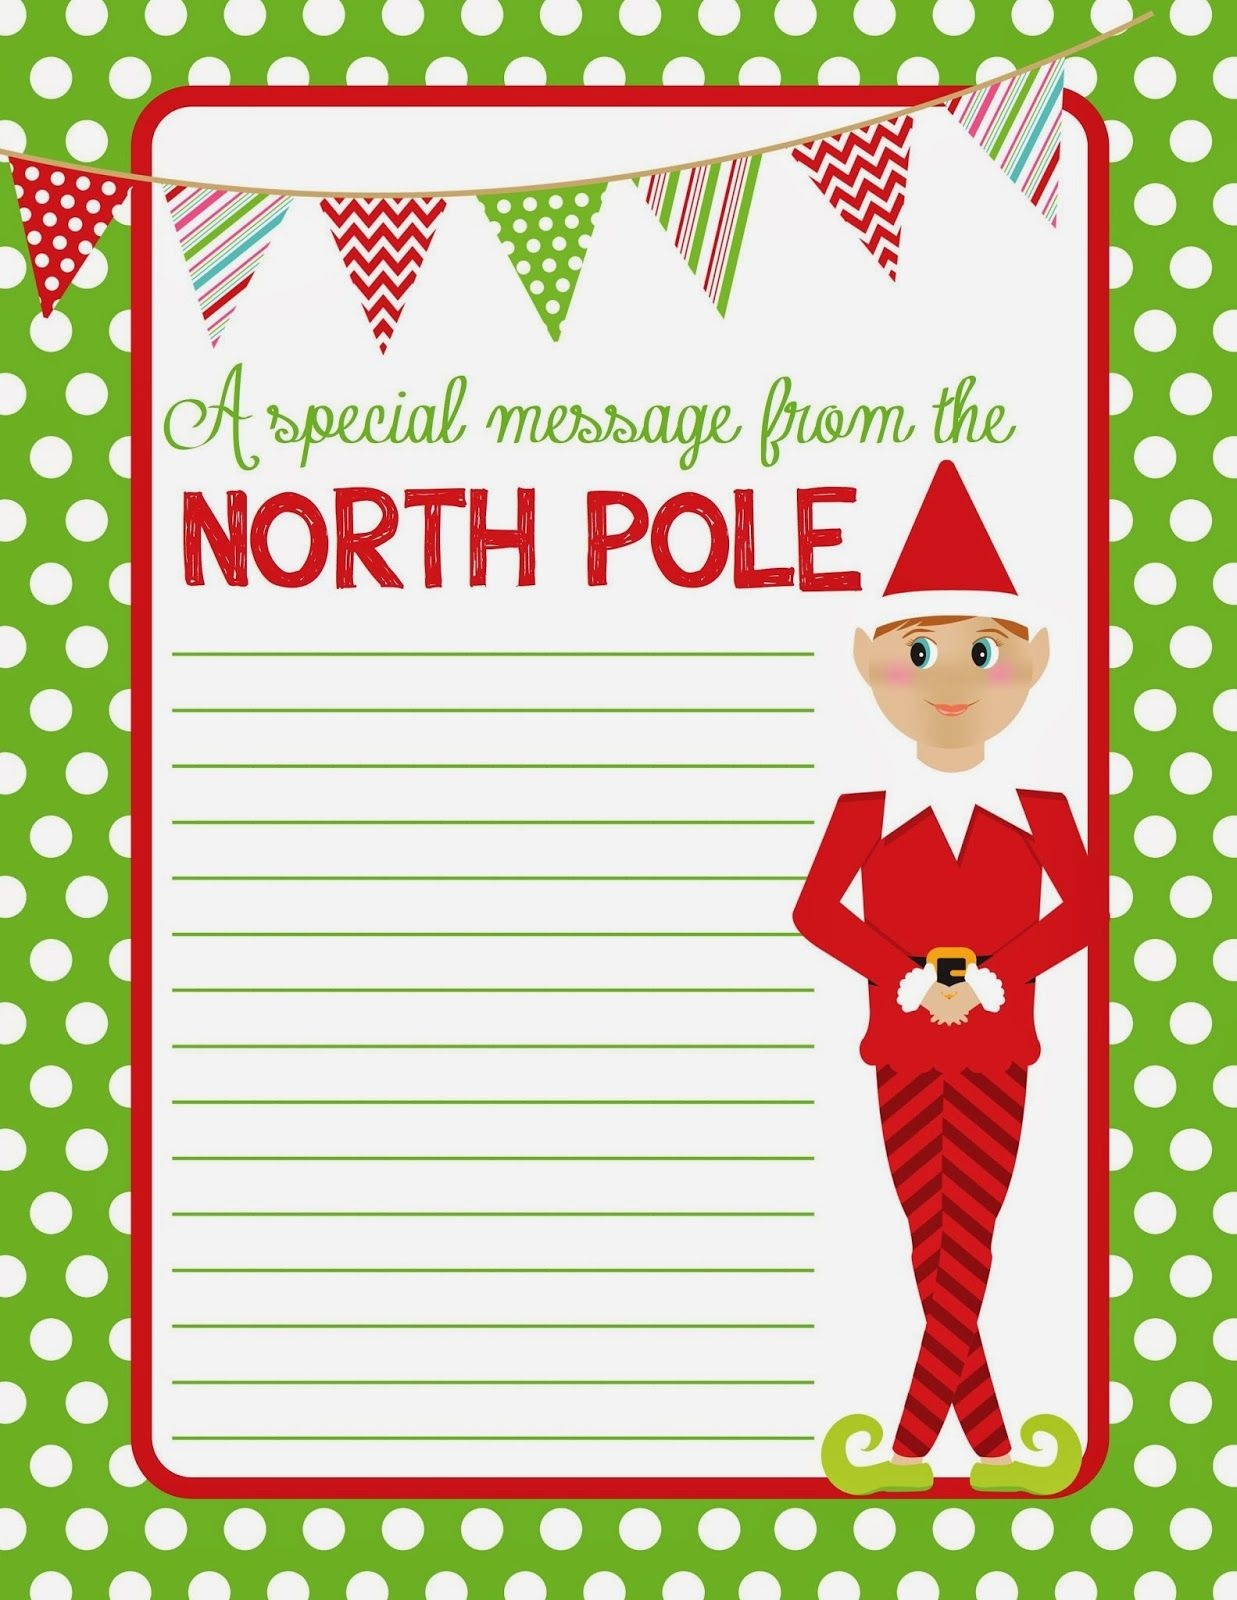 4 Best Images Of Elf On The Shelf Free Printable Christmas Paper - Free Printable Christmas Border Paper